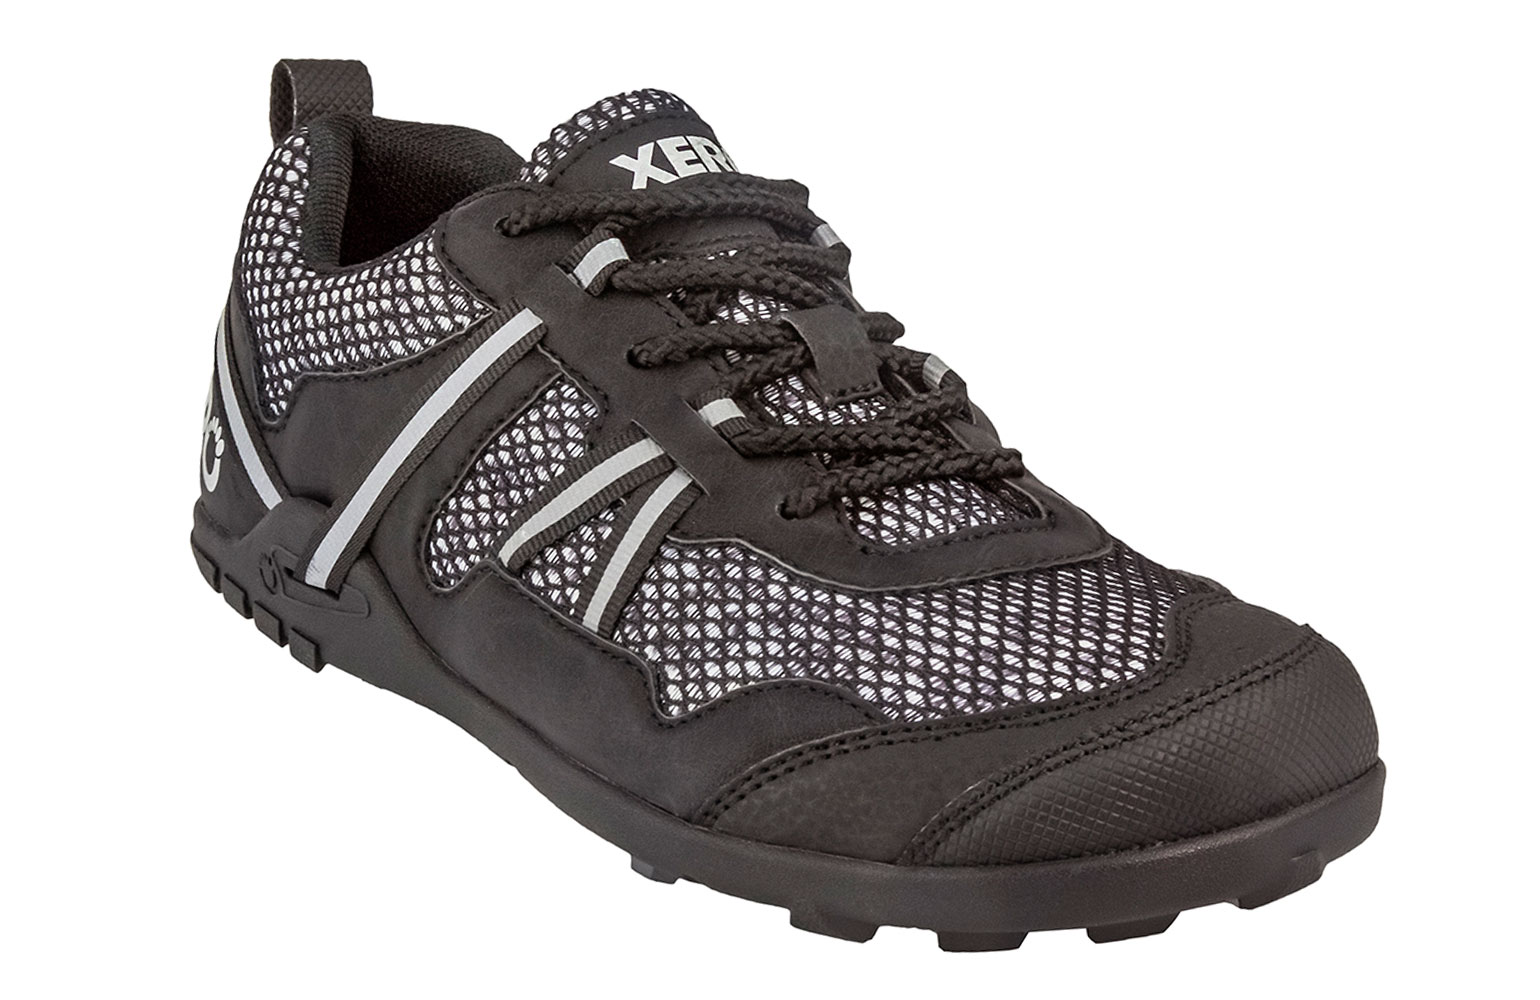 Xero Shoes: SAVE 10-70% in our BLACK